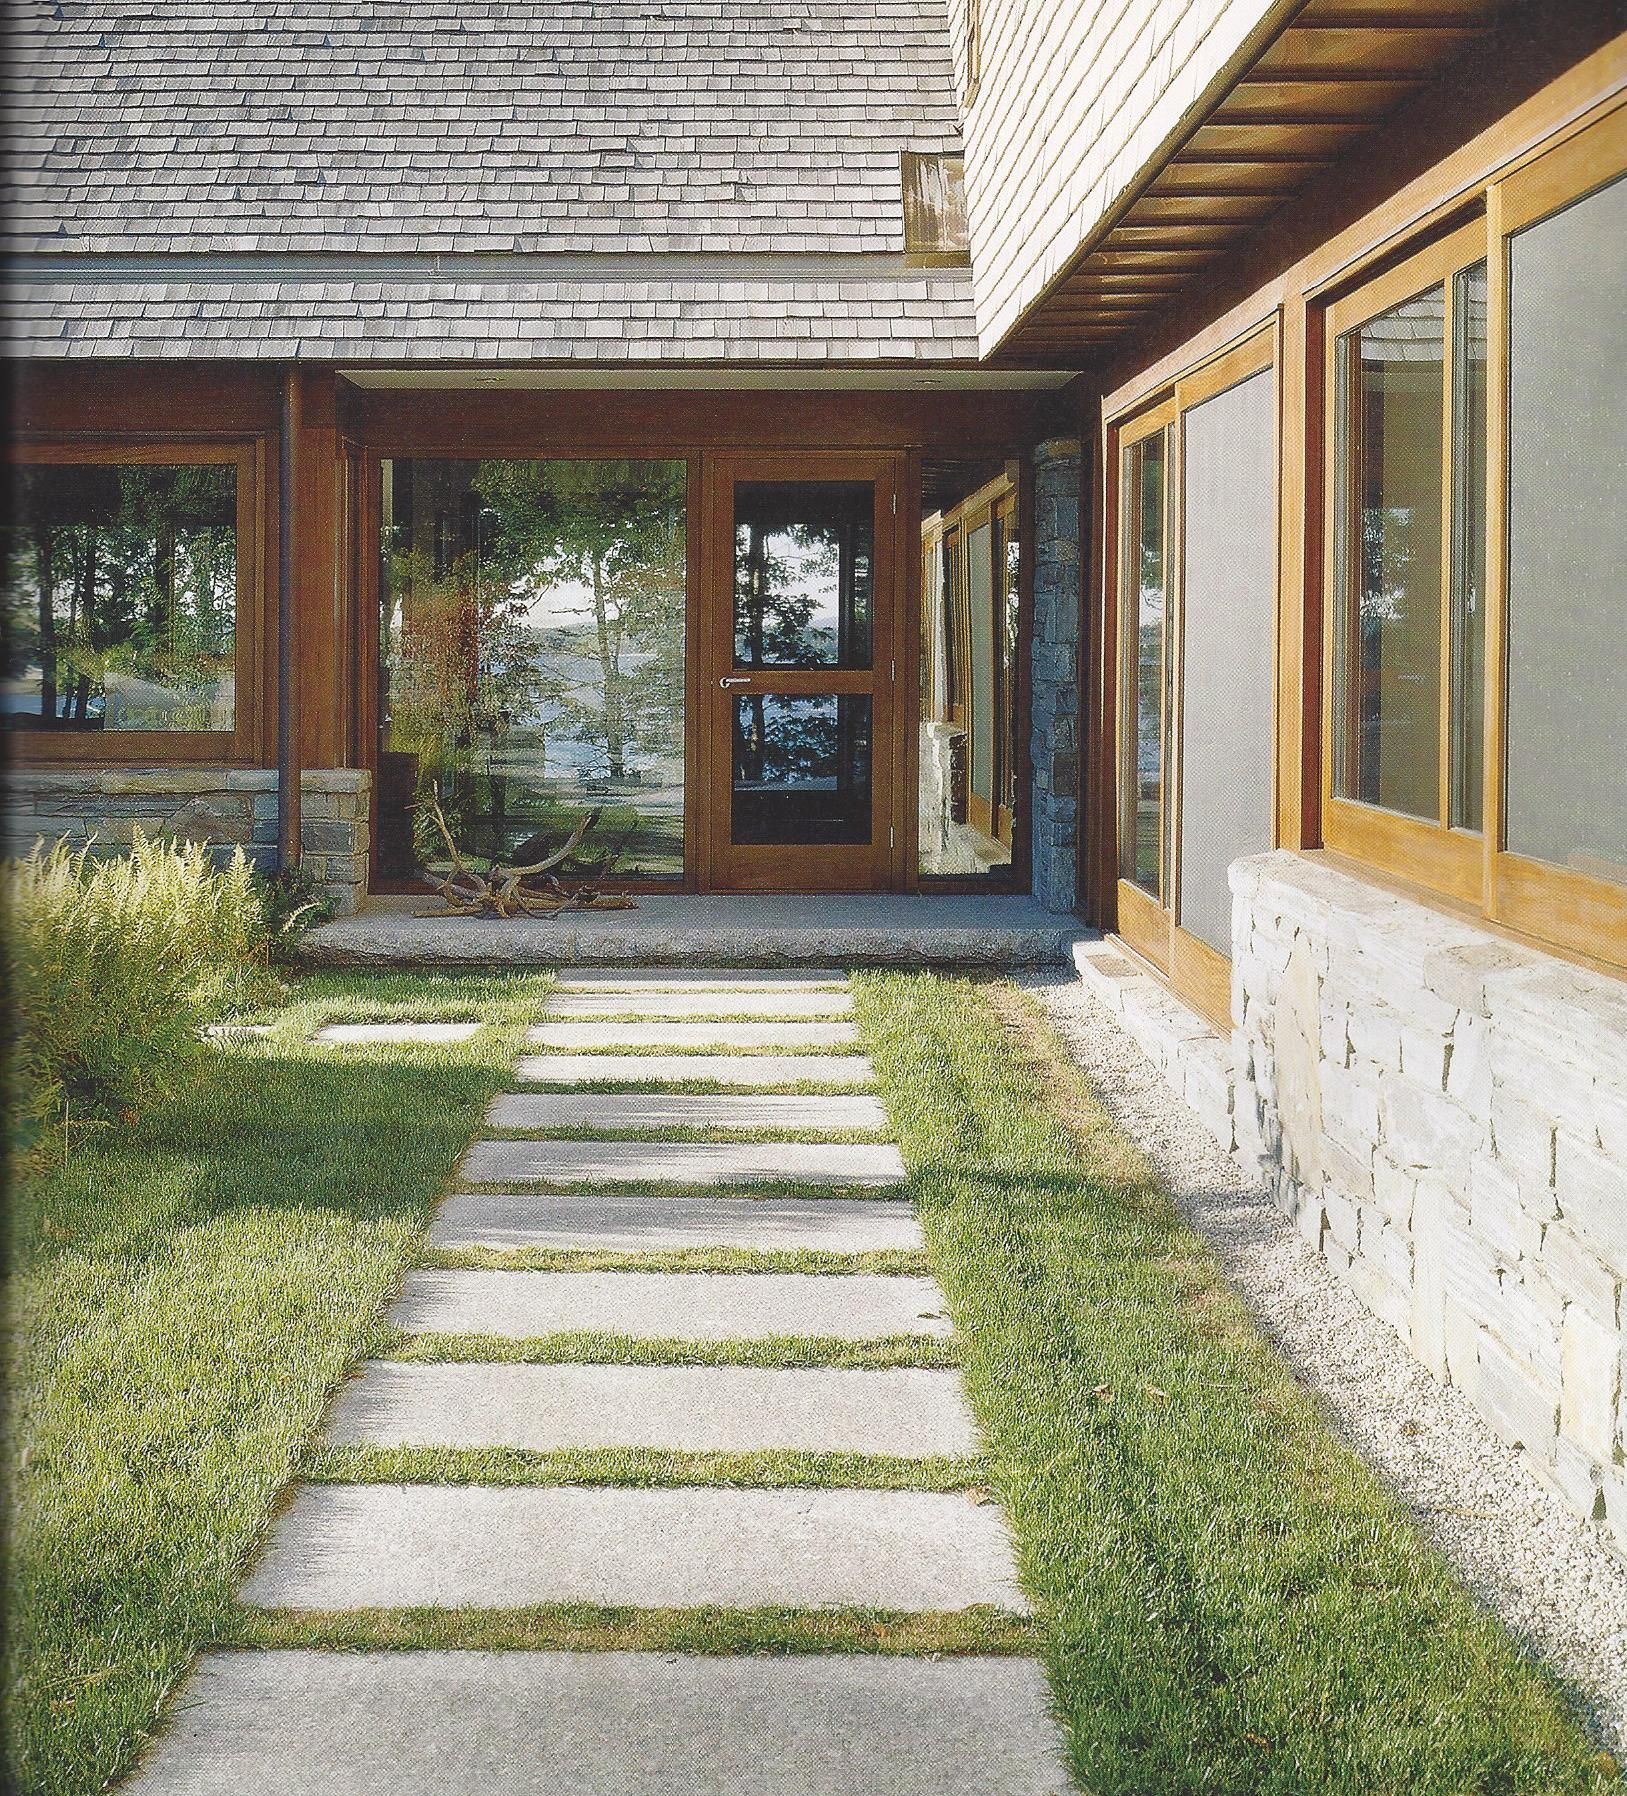 Patio And Walkway Ideas That Work: Simple Pavers In Grass. Patio & Walkway Ideas That Work